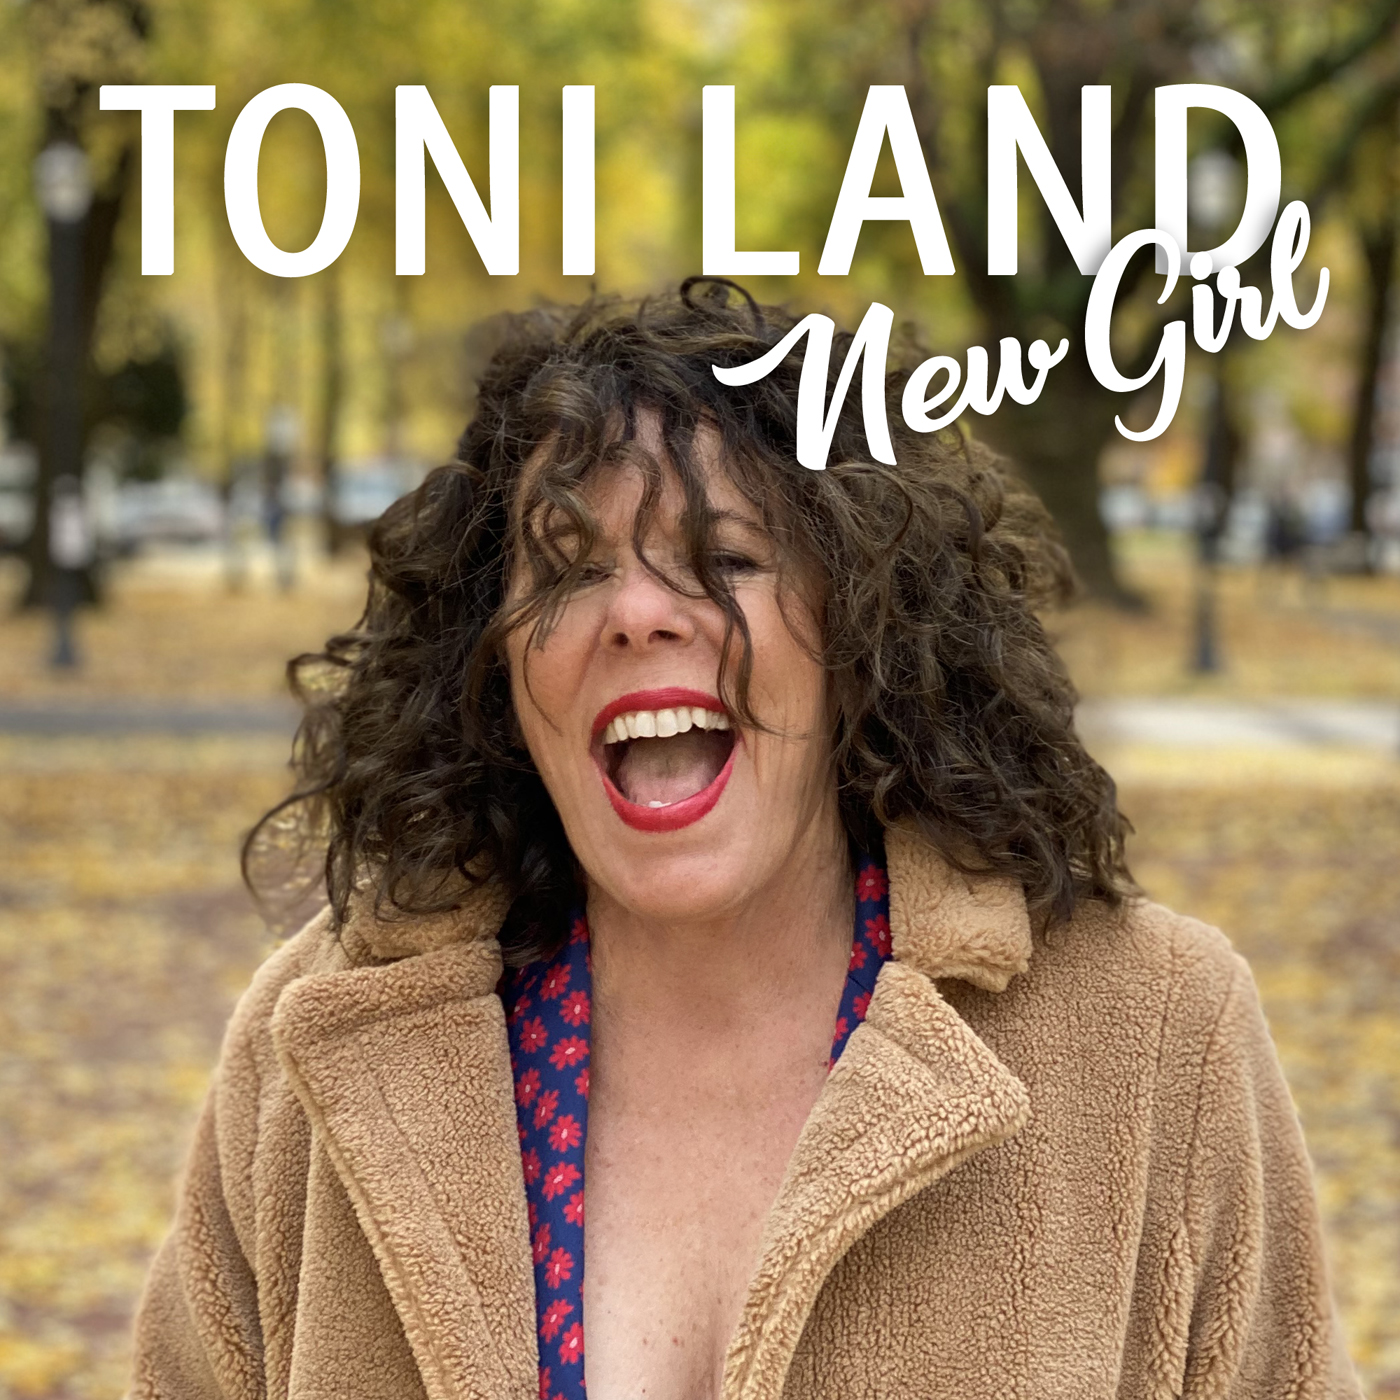 Toni Land - New Girl